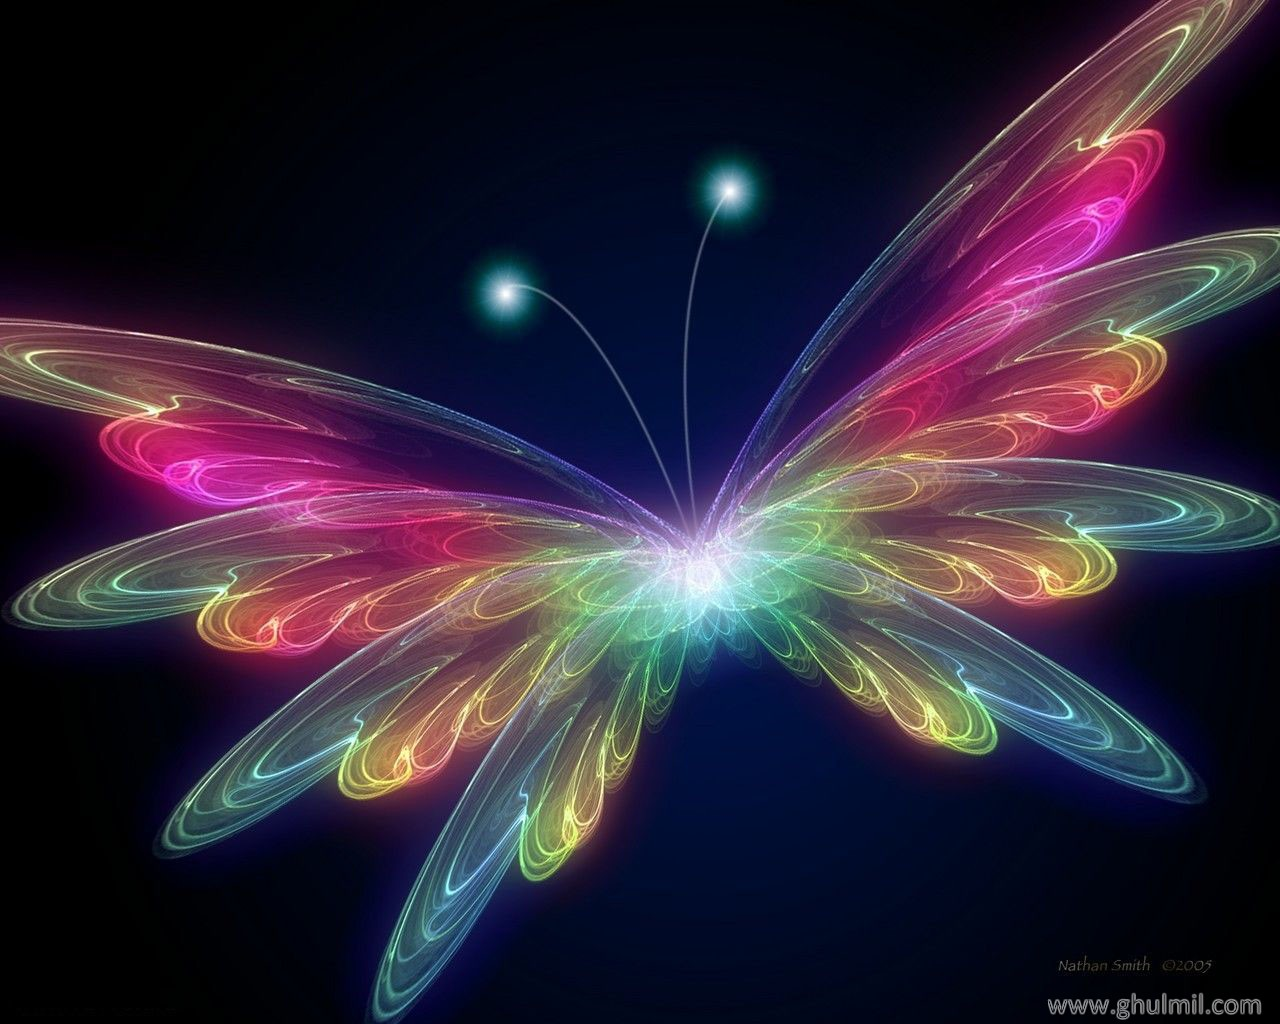 http://4.bp.blogspot.com/-rMhyShNAiR4/TqhNksrPqpI/AAAAAAAAAeE/k1Roj3yo-6U/s1600/very-beautiful-3d-hd-hq-colorful-butterfly-wallpaper.jpg